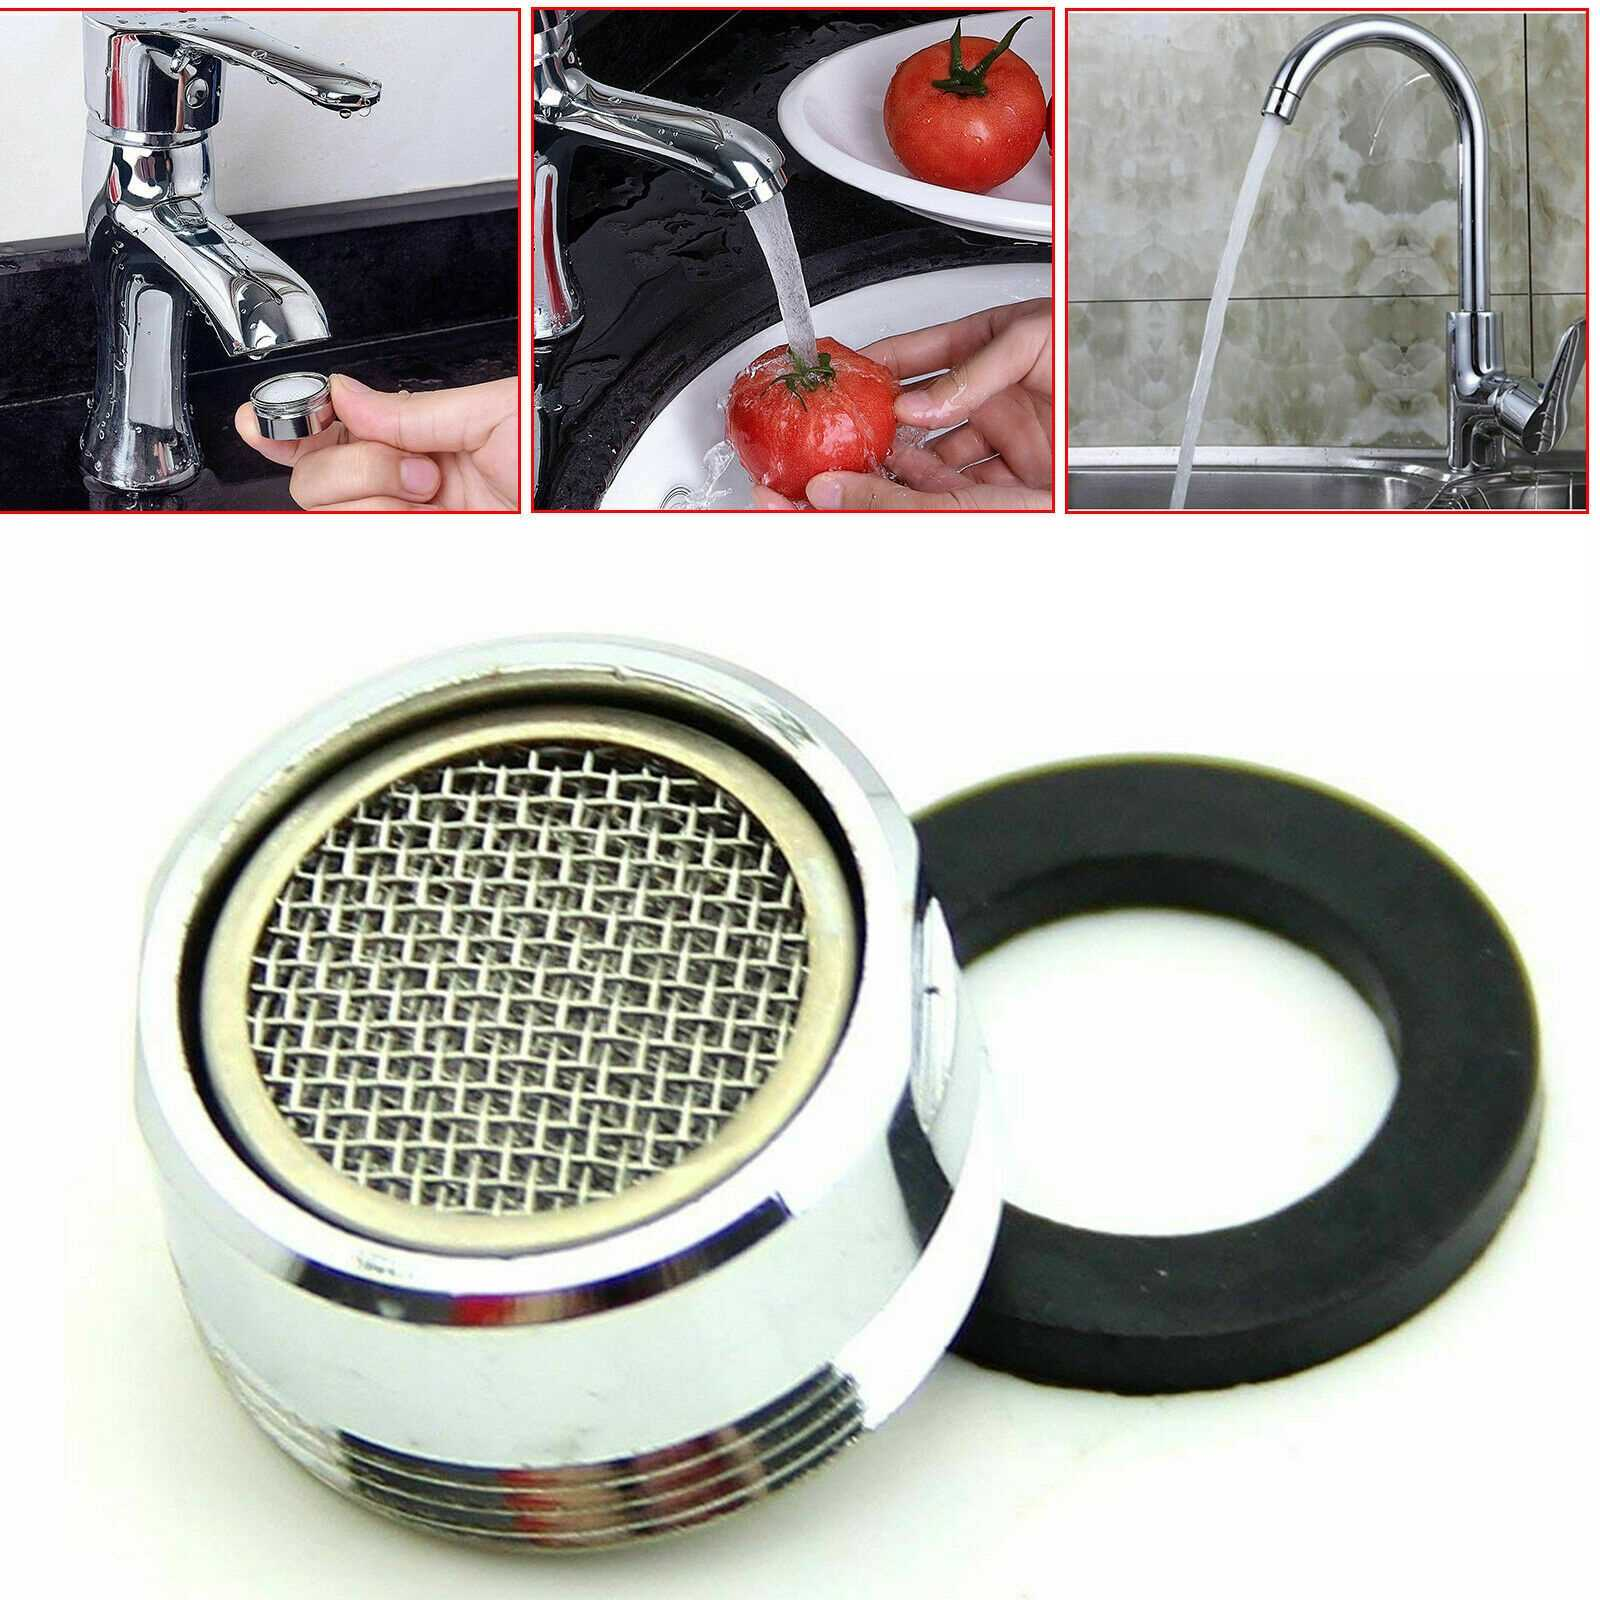 22Mm Male Tap Aerator Water Saving Faucet Nozzle Spout End Diffuser Filter